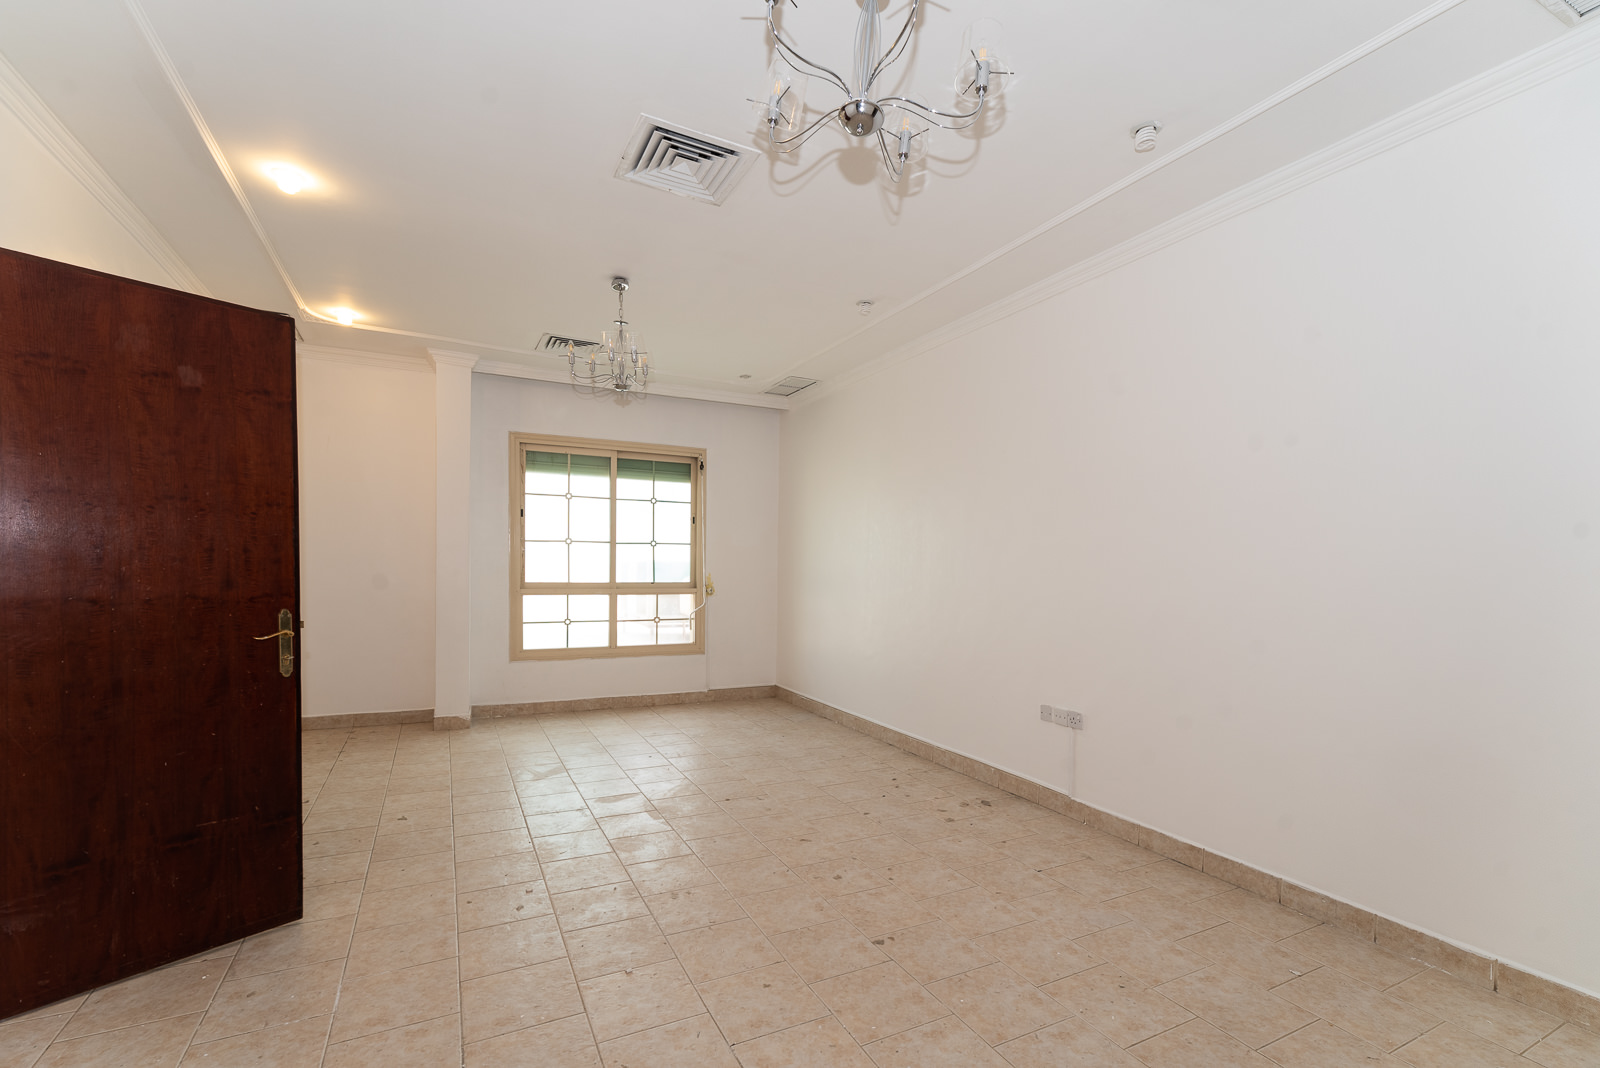 Qortuba – unfurnished, three bedroom apartment w/access to roof terrace